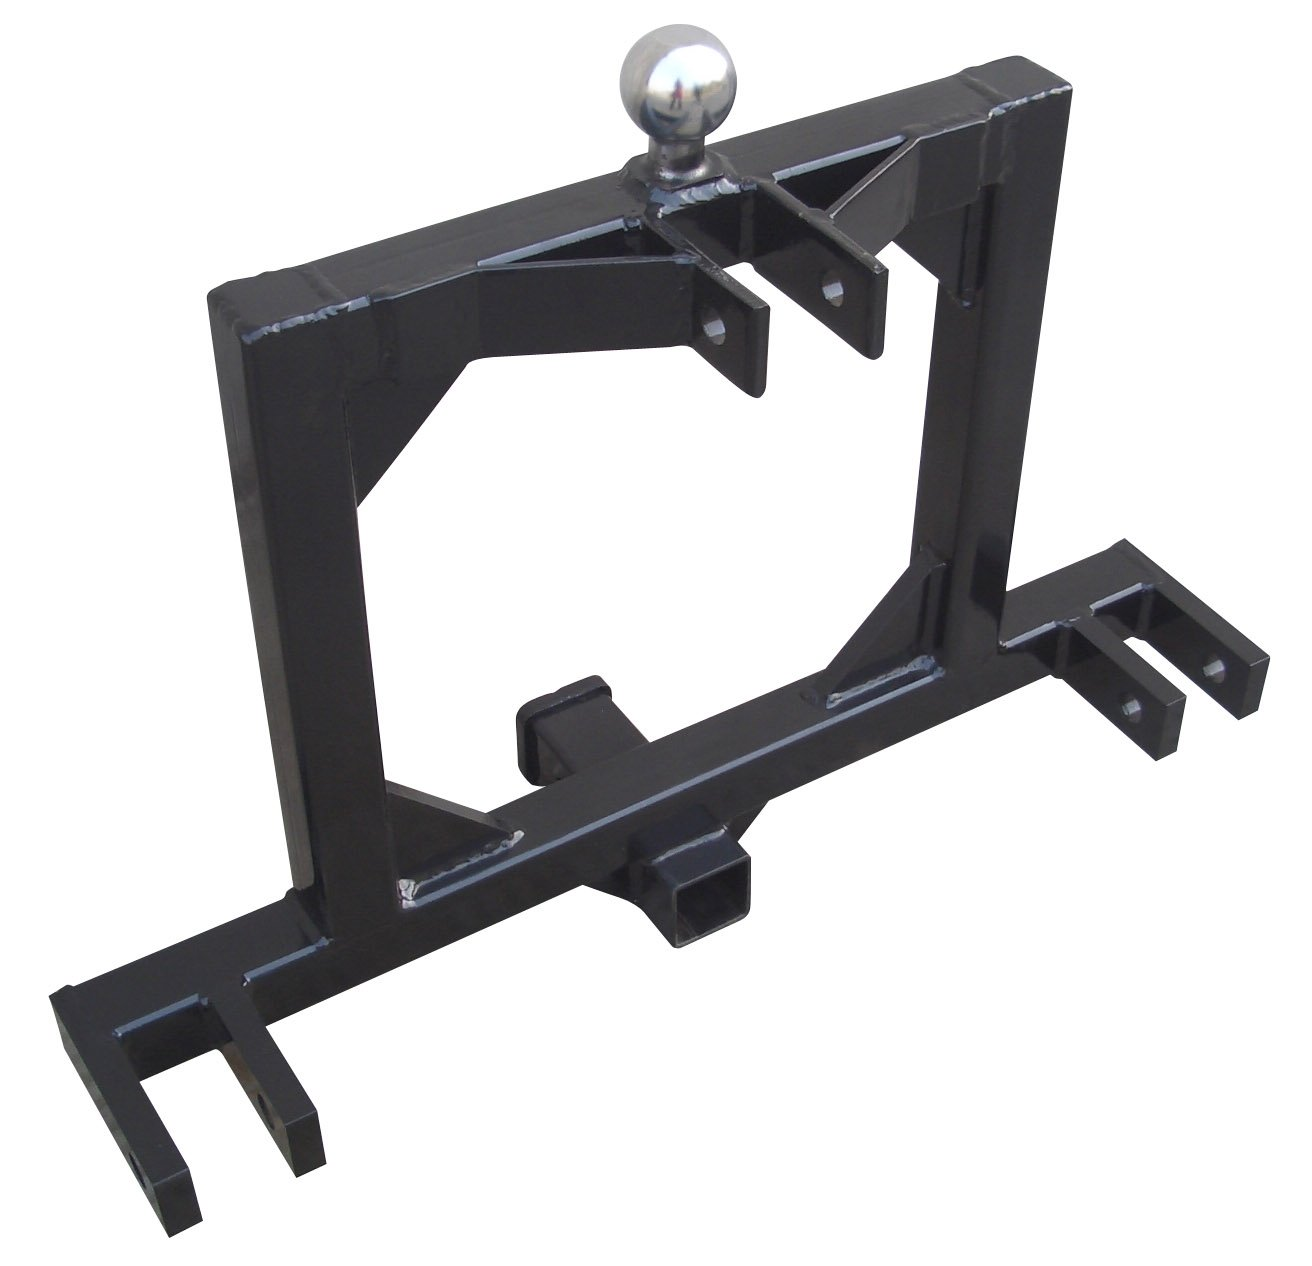 Field Tuff FTF-02TQH 3 Point Hitch by Field Tuff